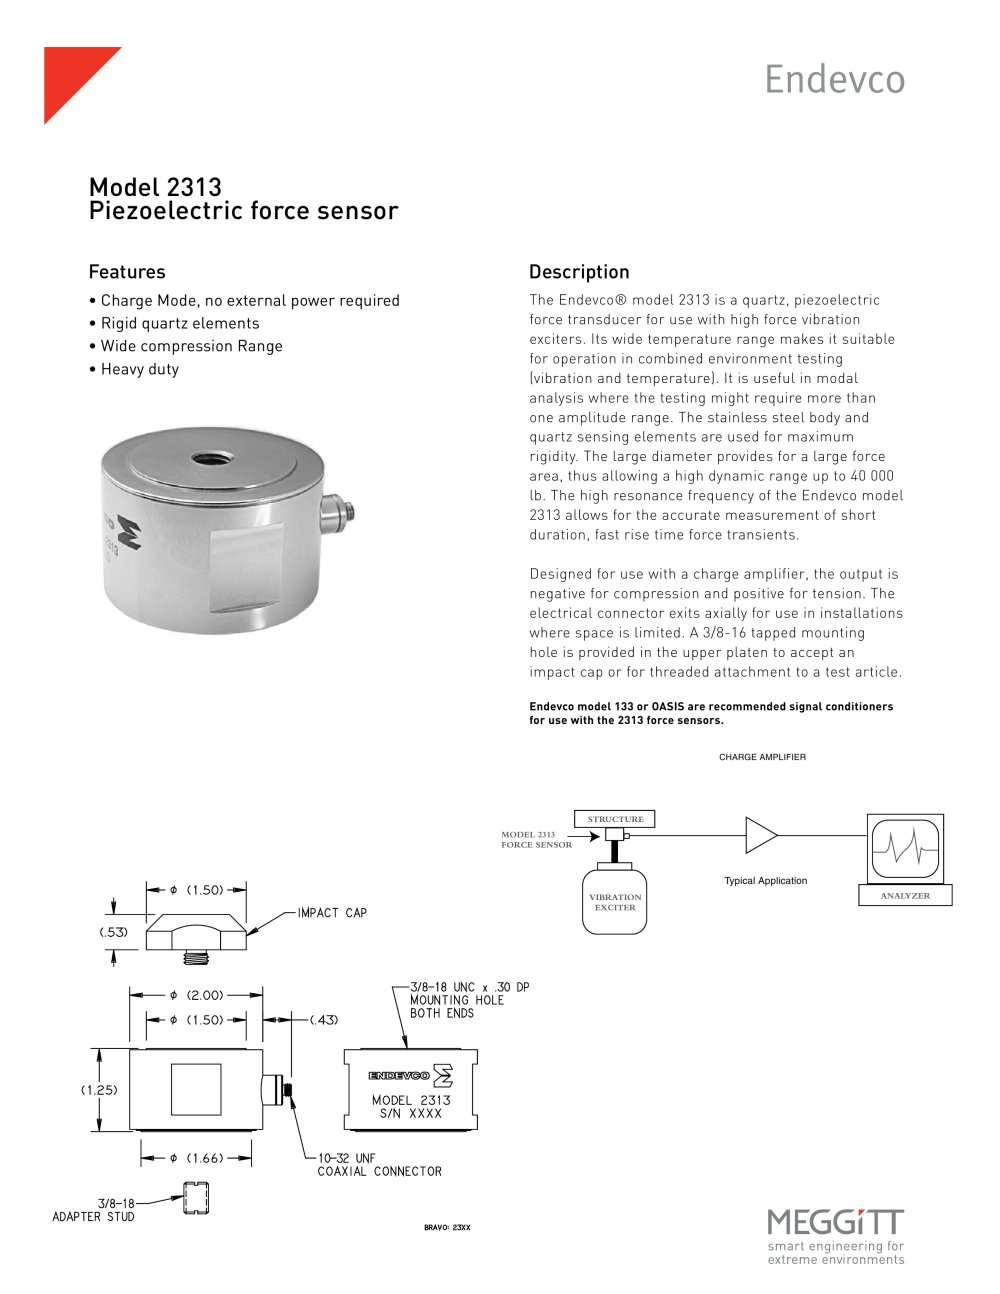 Endevco Model 2313 Piezoelectric Force Transducer - 1 / 2 Pages